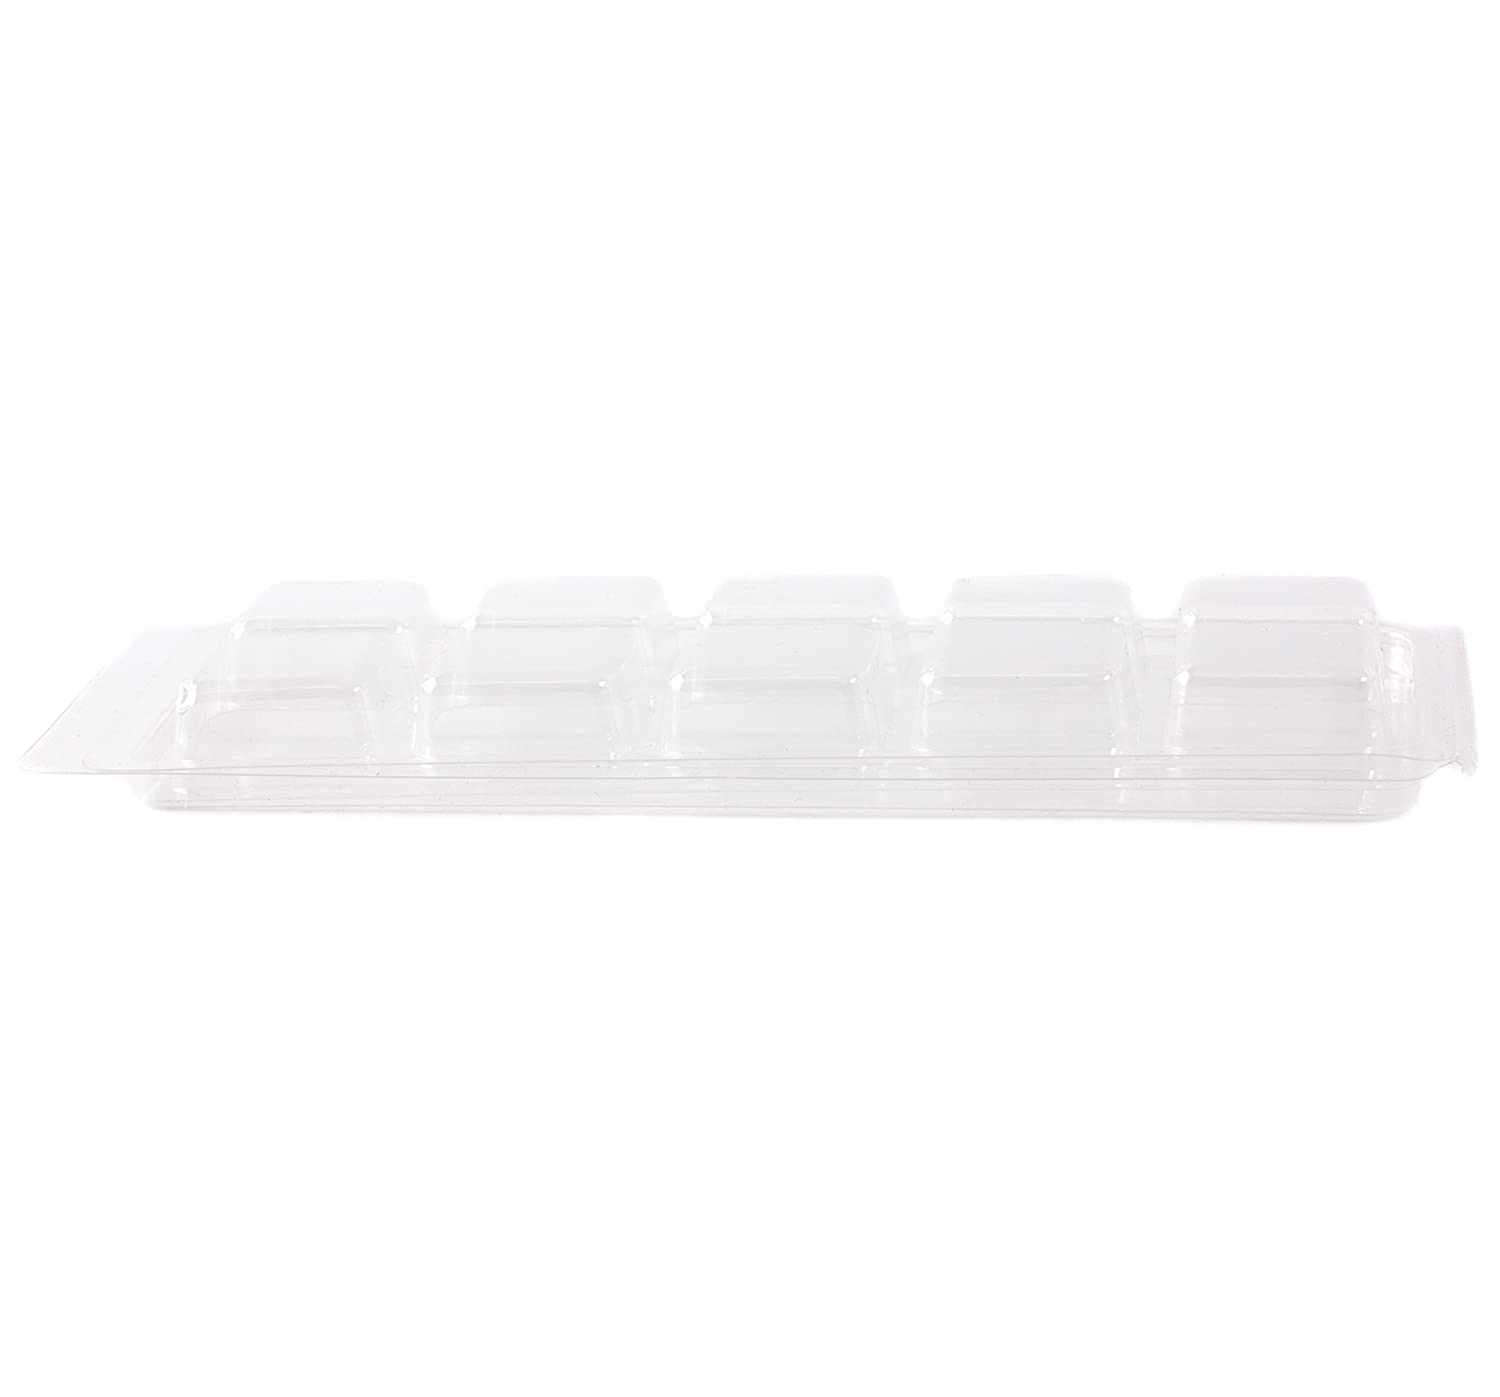 World Of Moulds 10 Cavity Wax Tart Clamshell Mould x 10